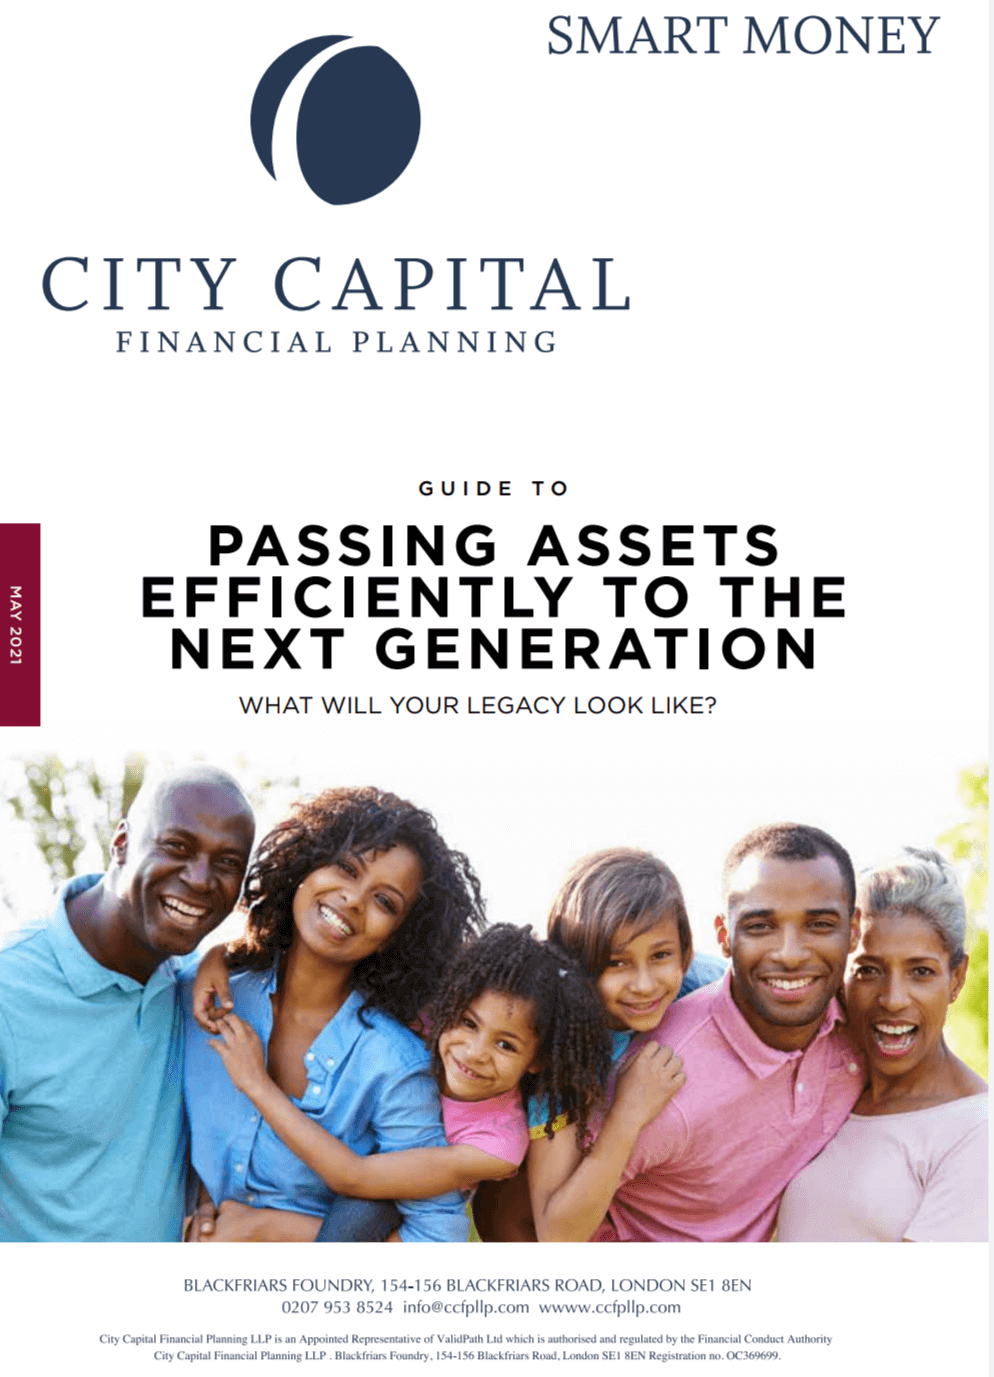 Guide to Passing Assets Efficiently to the Next Generation